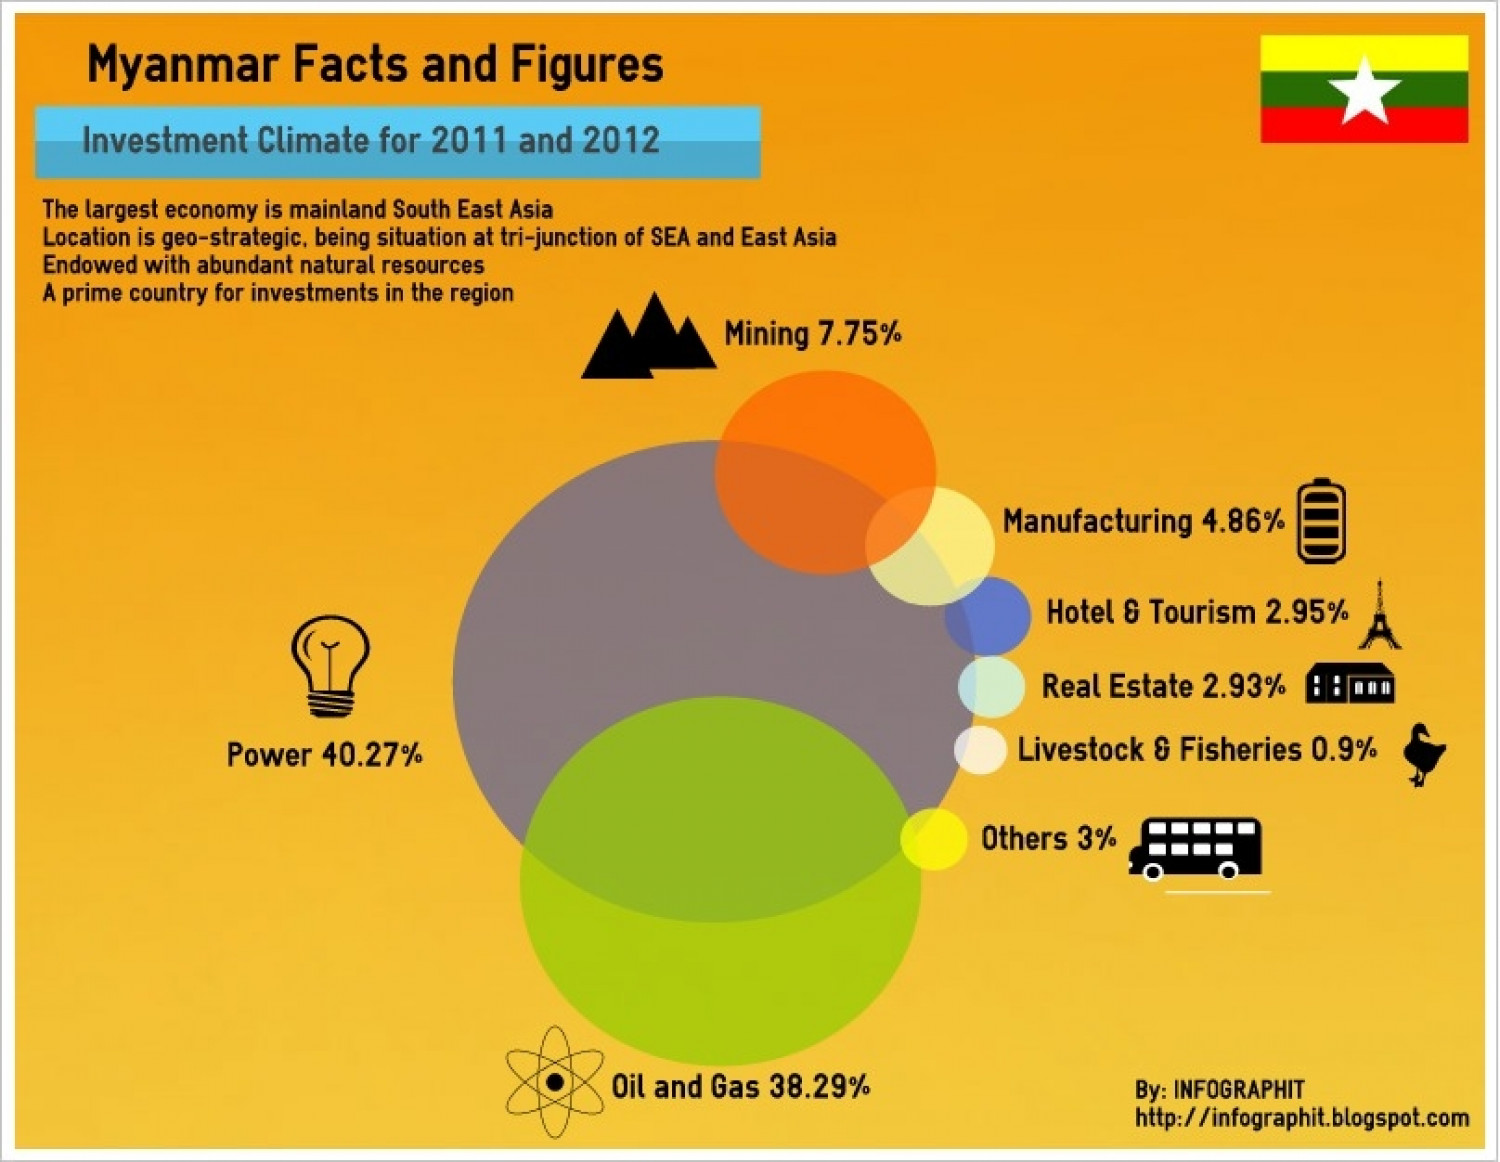 Myanmar Facts and Figures 2011/2012 Infographic